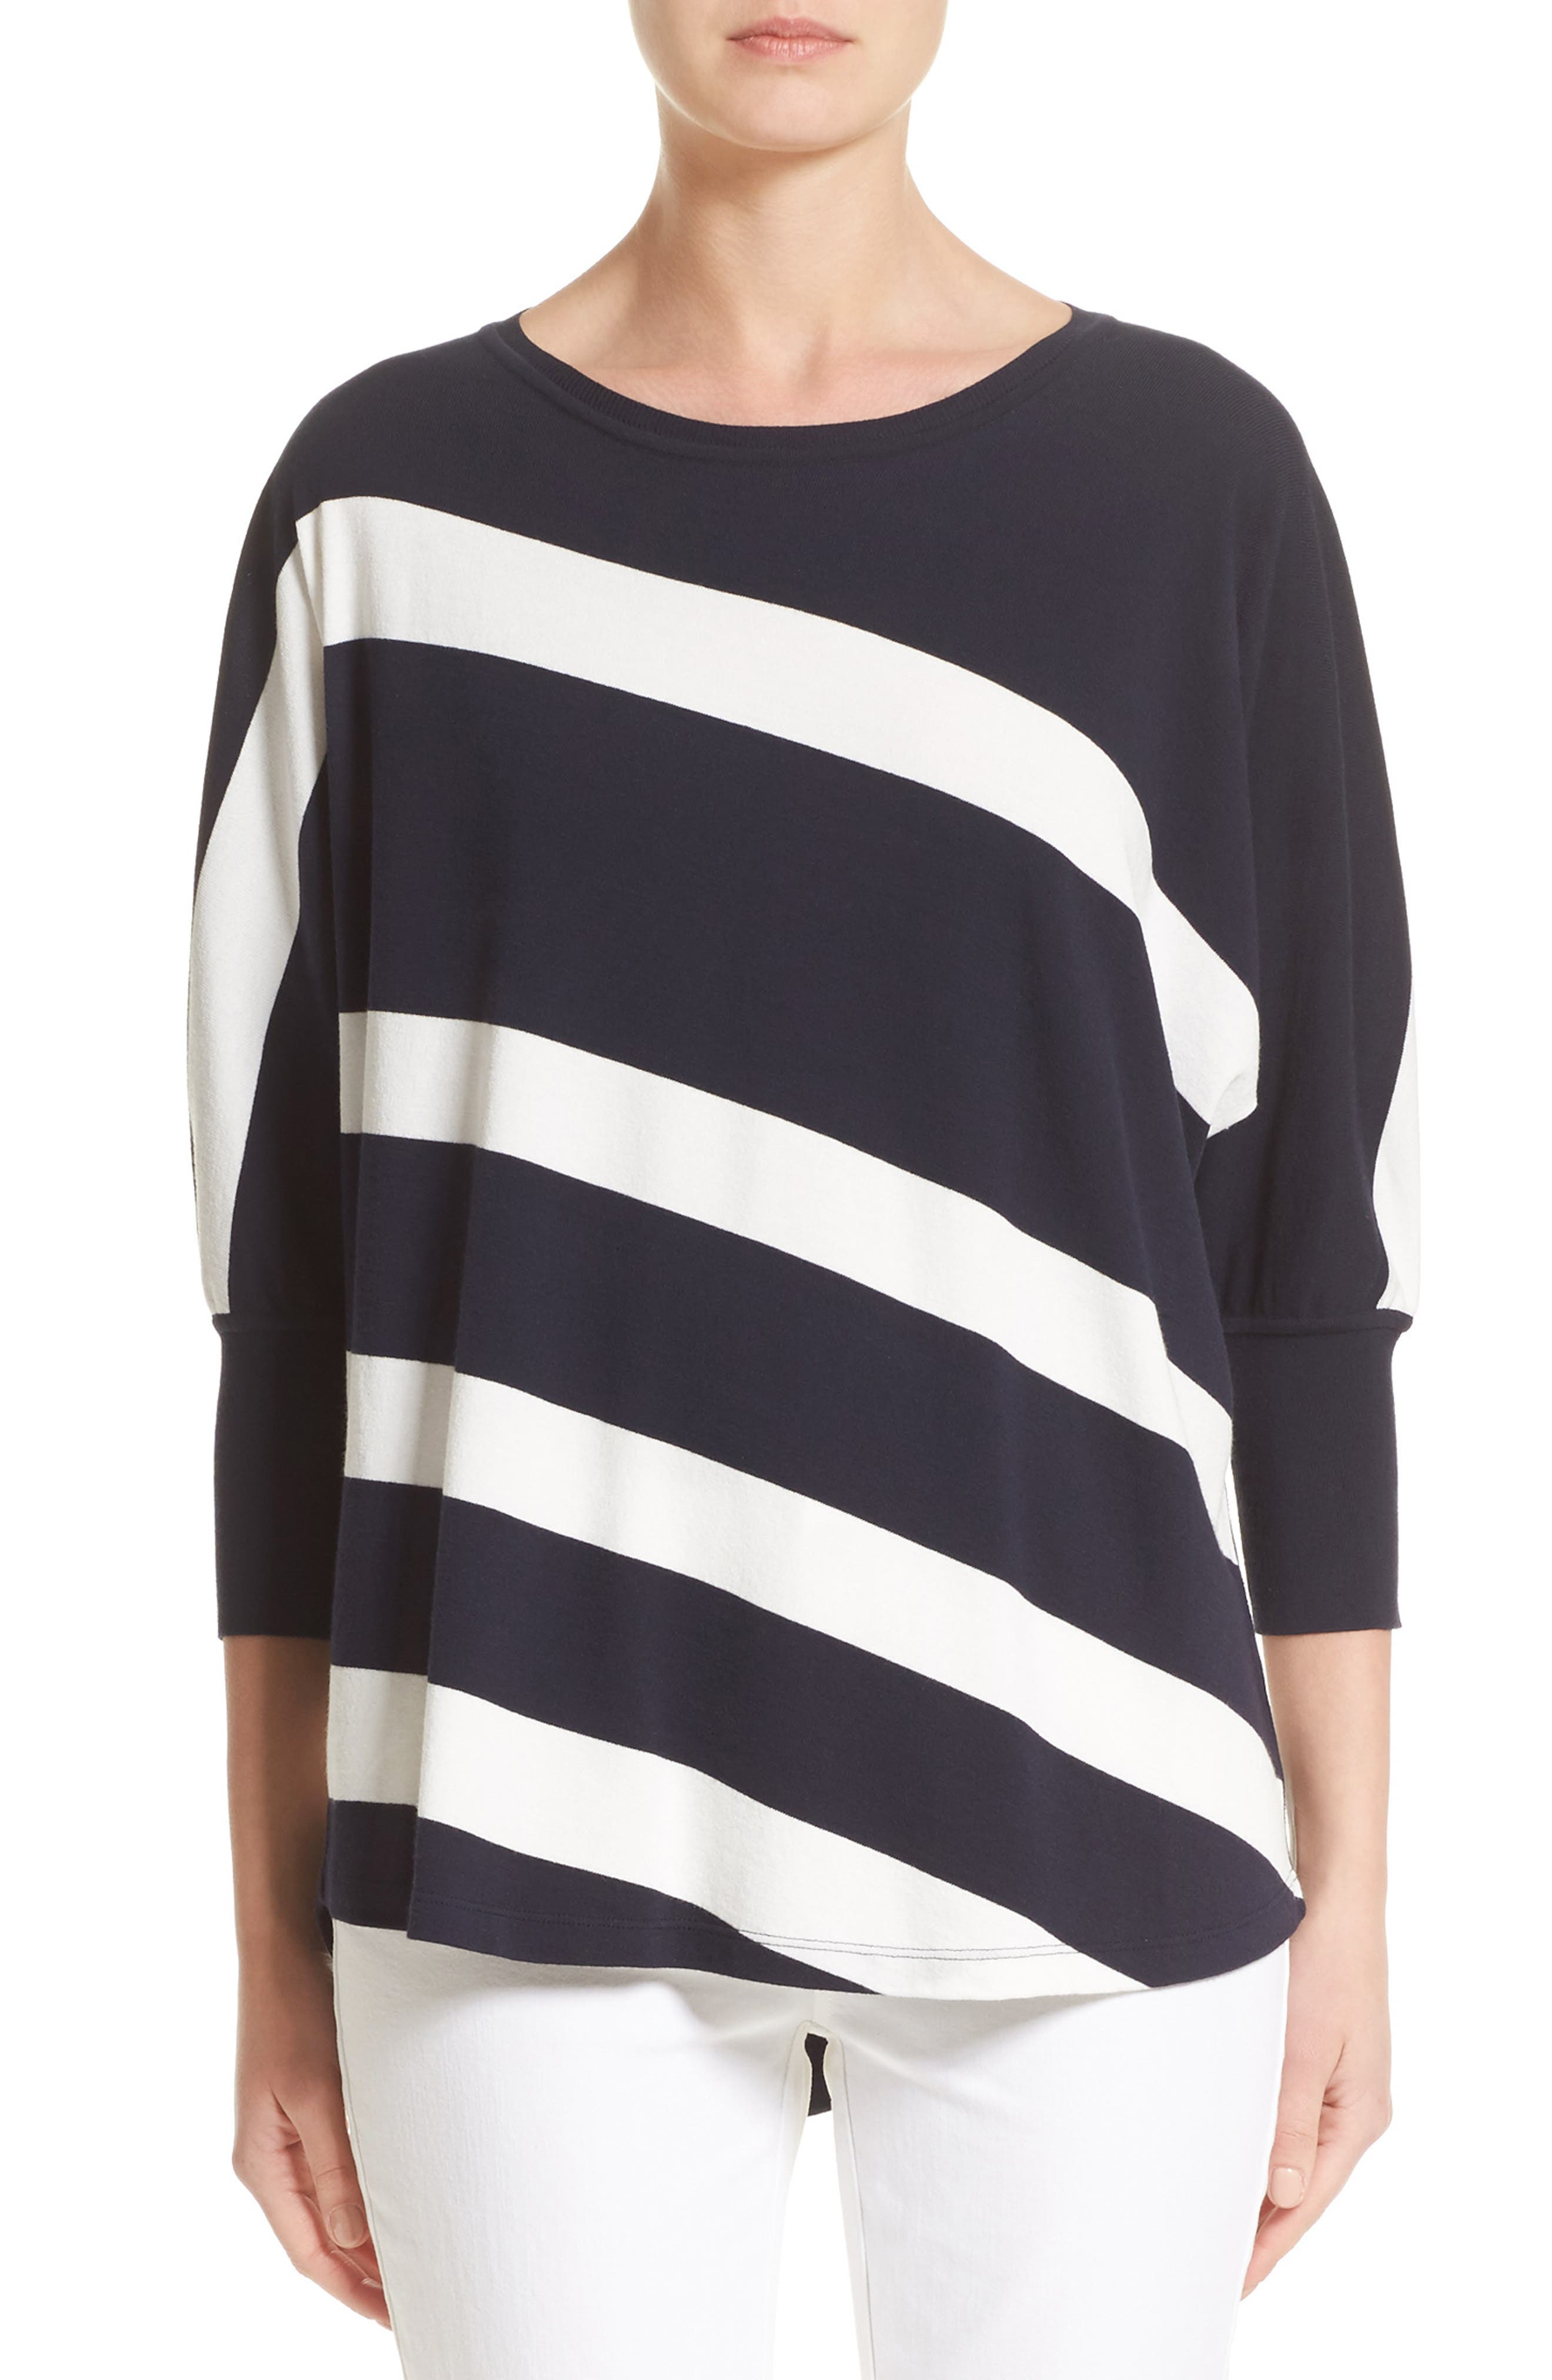 LAFAYETTE 148 NEW YORK Stripe Sweater